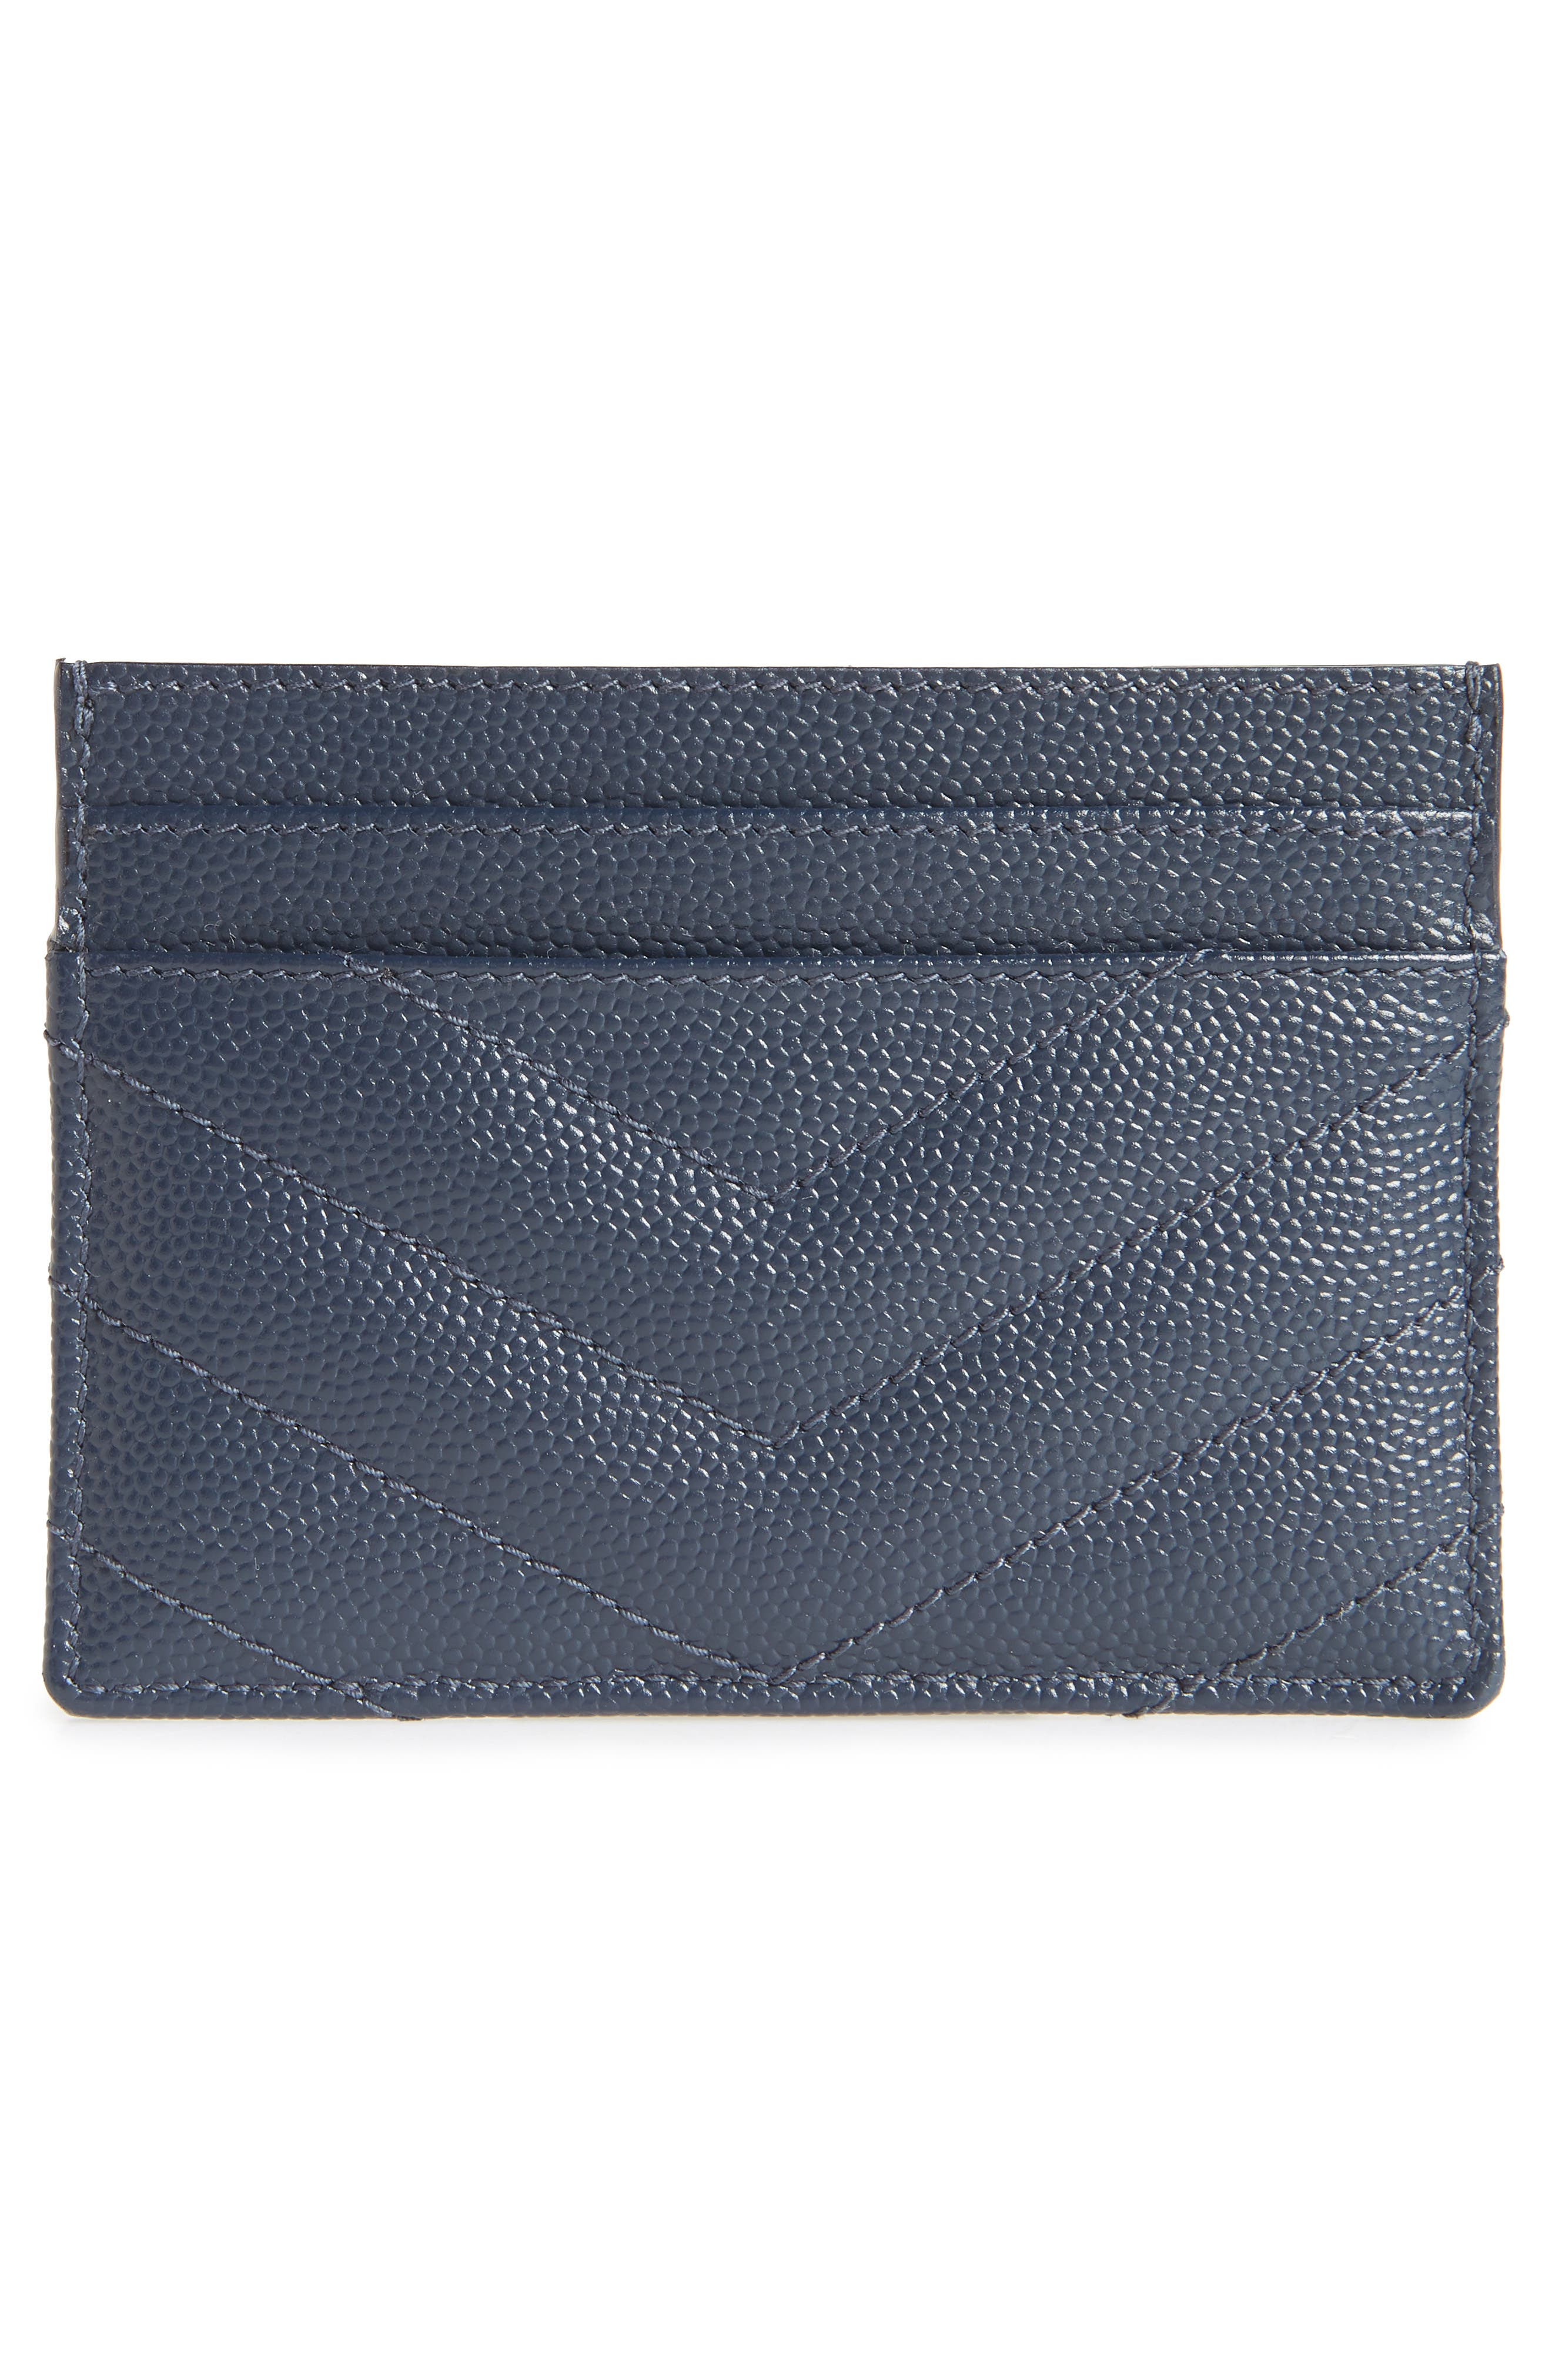 Monogram Quilted Leather Credit Card Case,                             Alternate thumbnail 2, color,                             NAVY